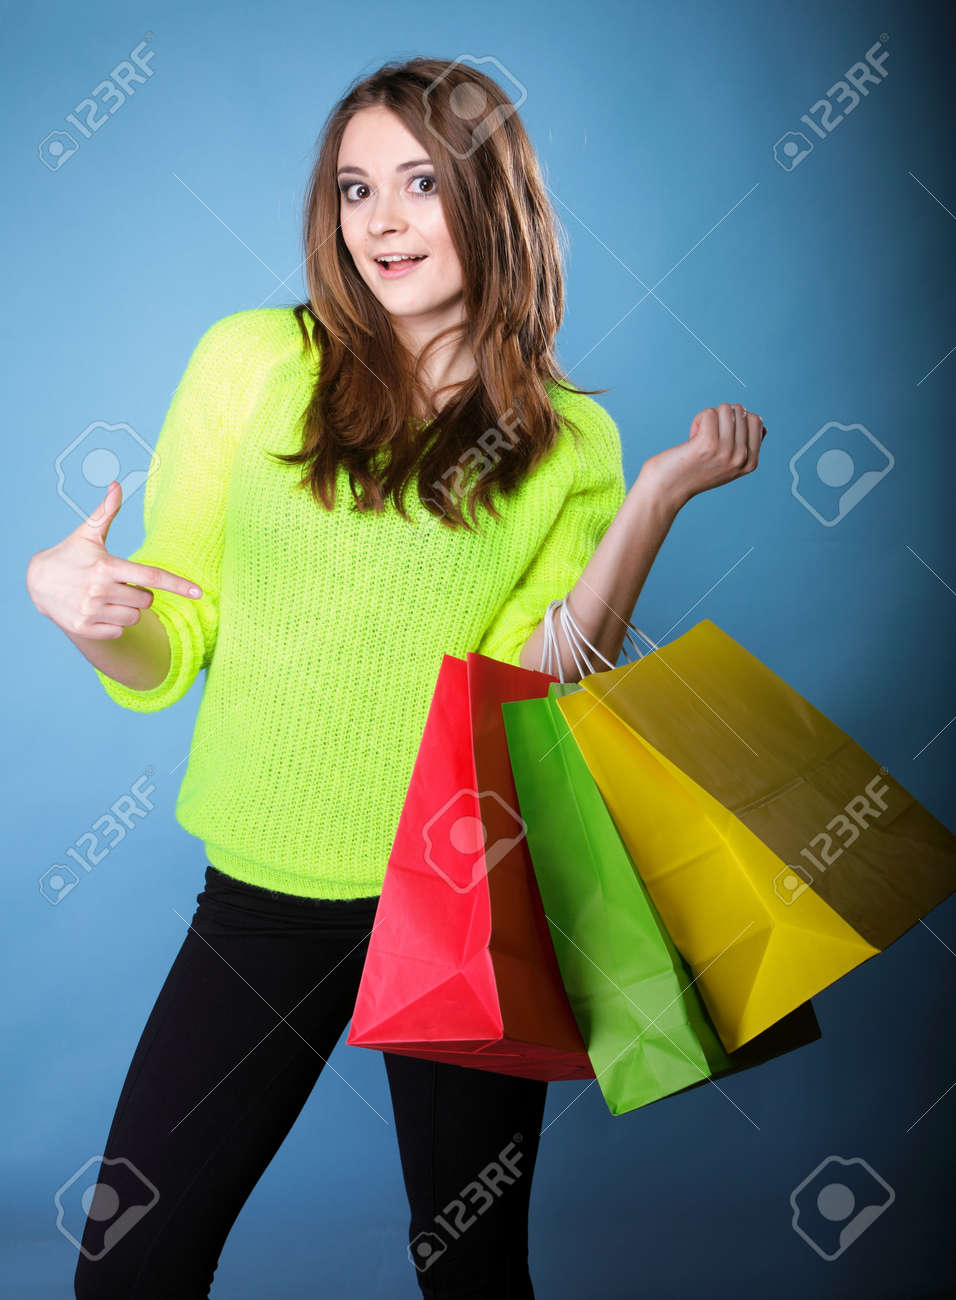 young woman in bright vivid colour sweater with paper multi coloured shopping bags on blue background. Sales and discounts concept. Stock Photo - 24254891